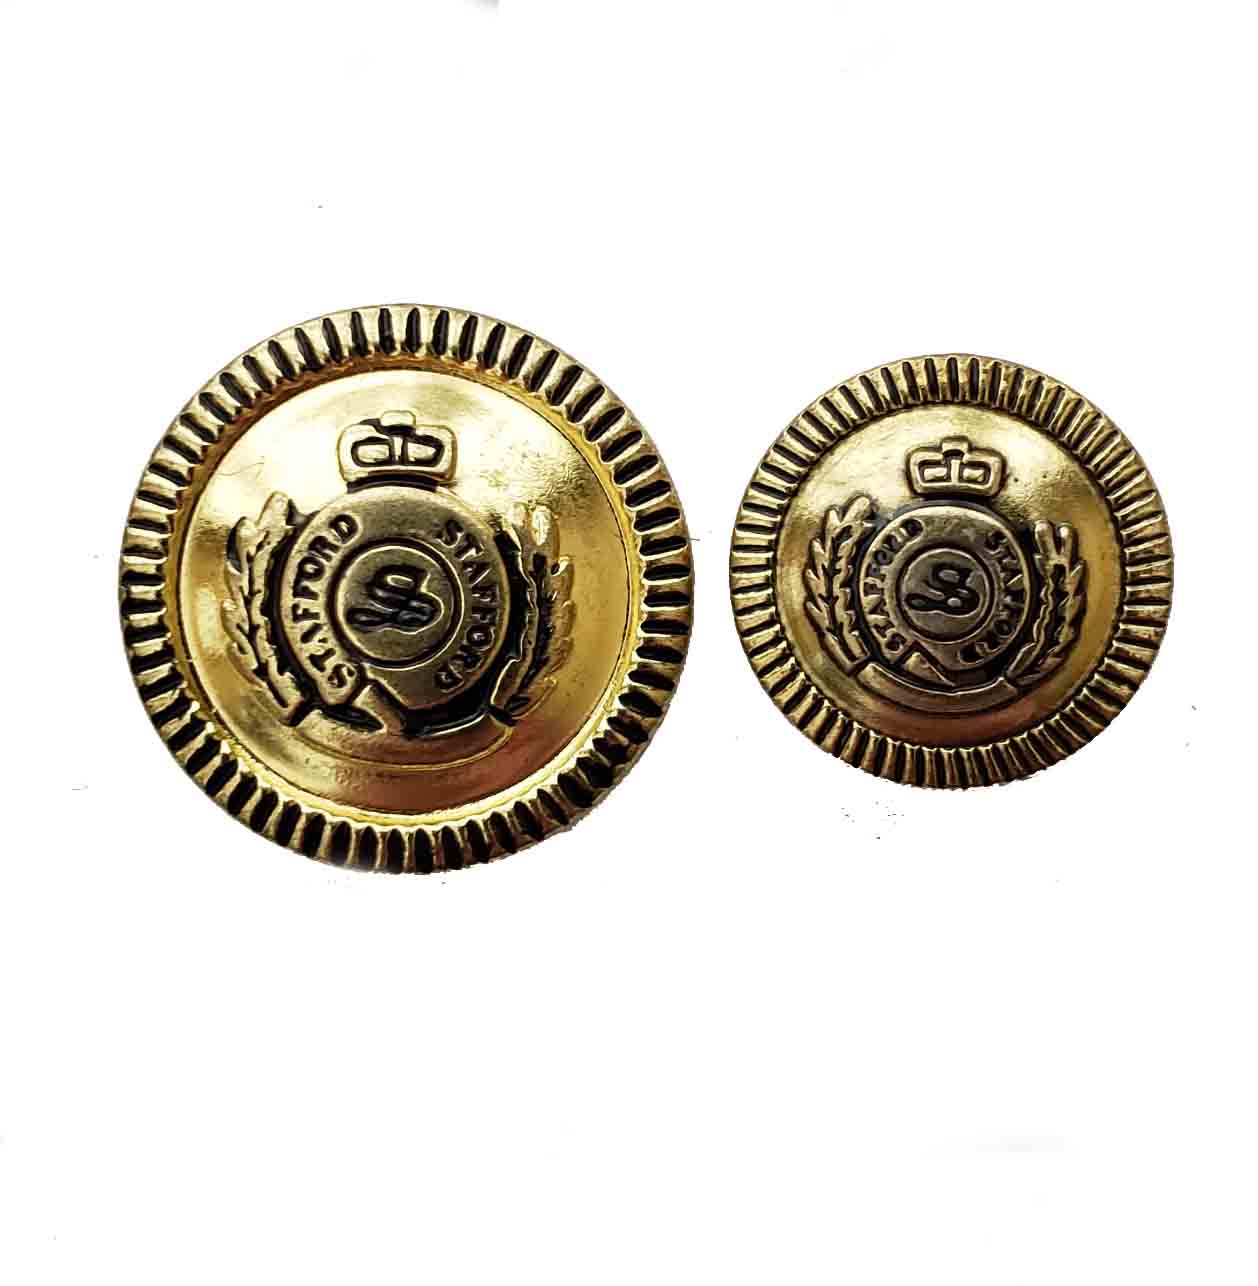 Two New Stafford Replacement Blazer Buttons Gold Brass S Monogram Men's